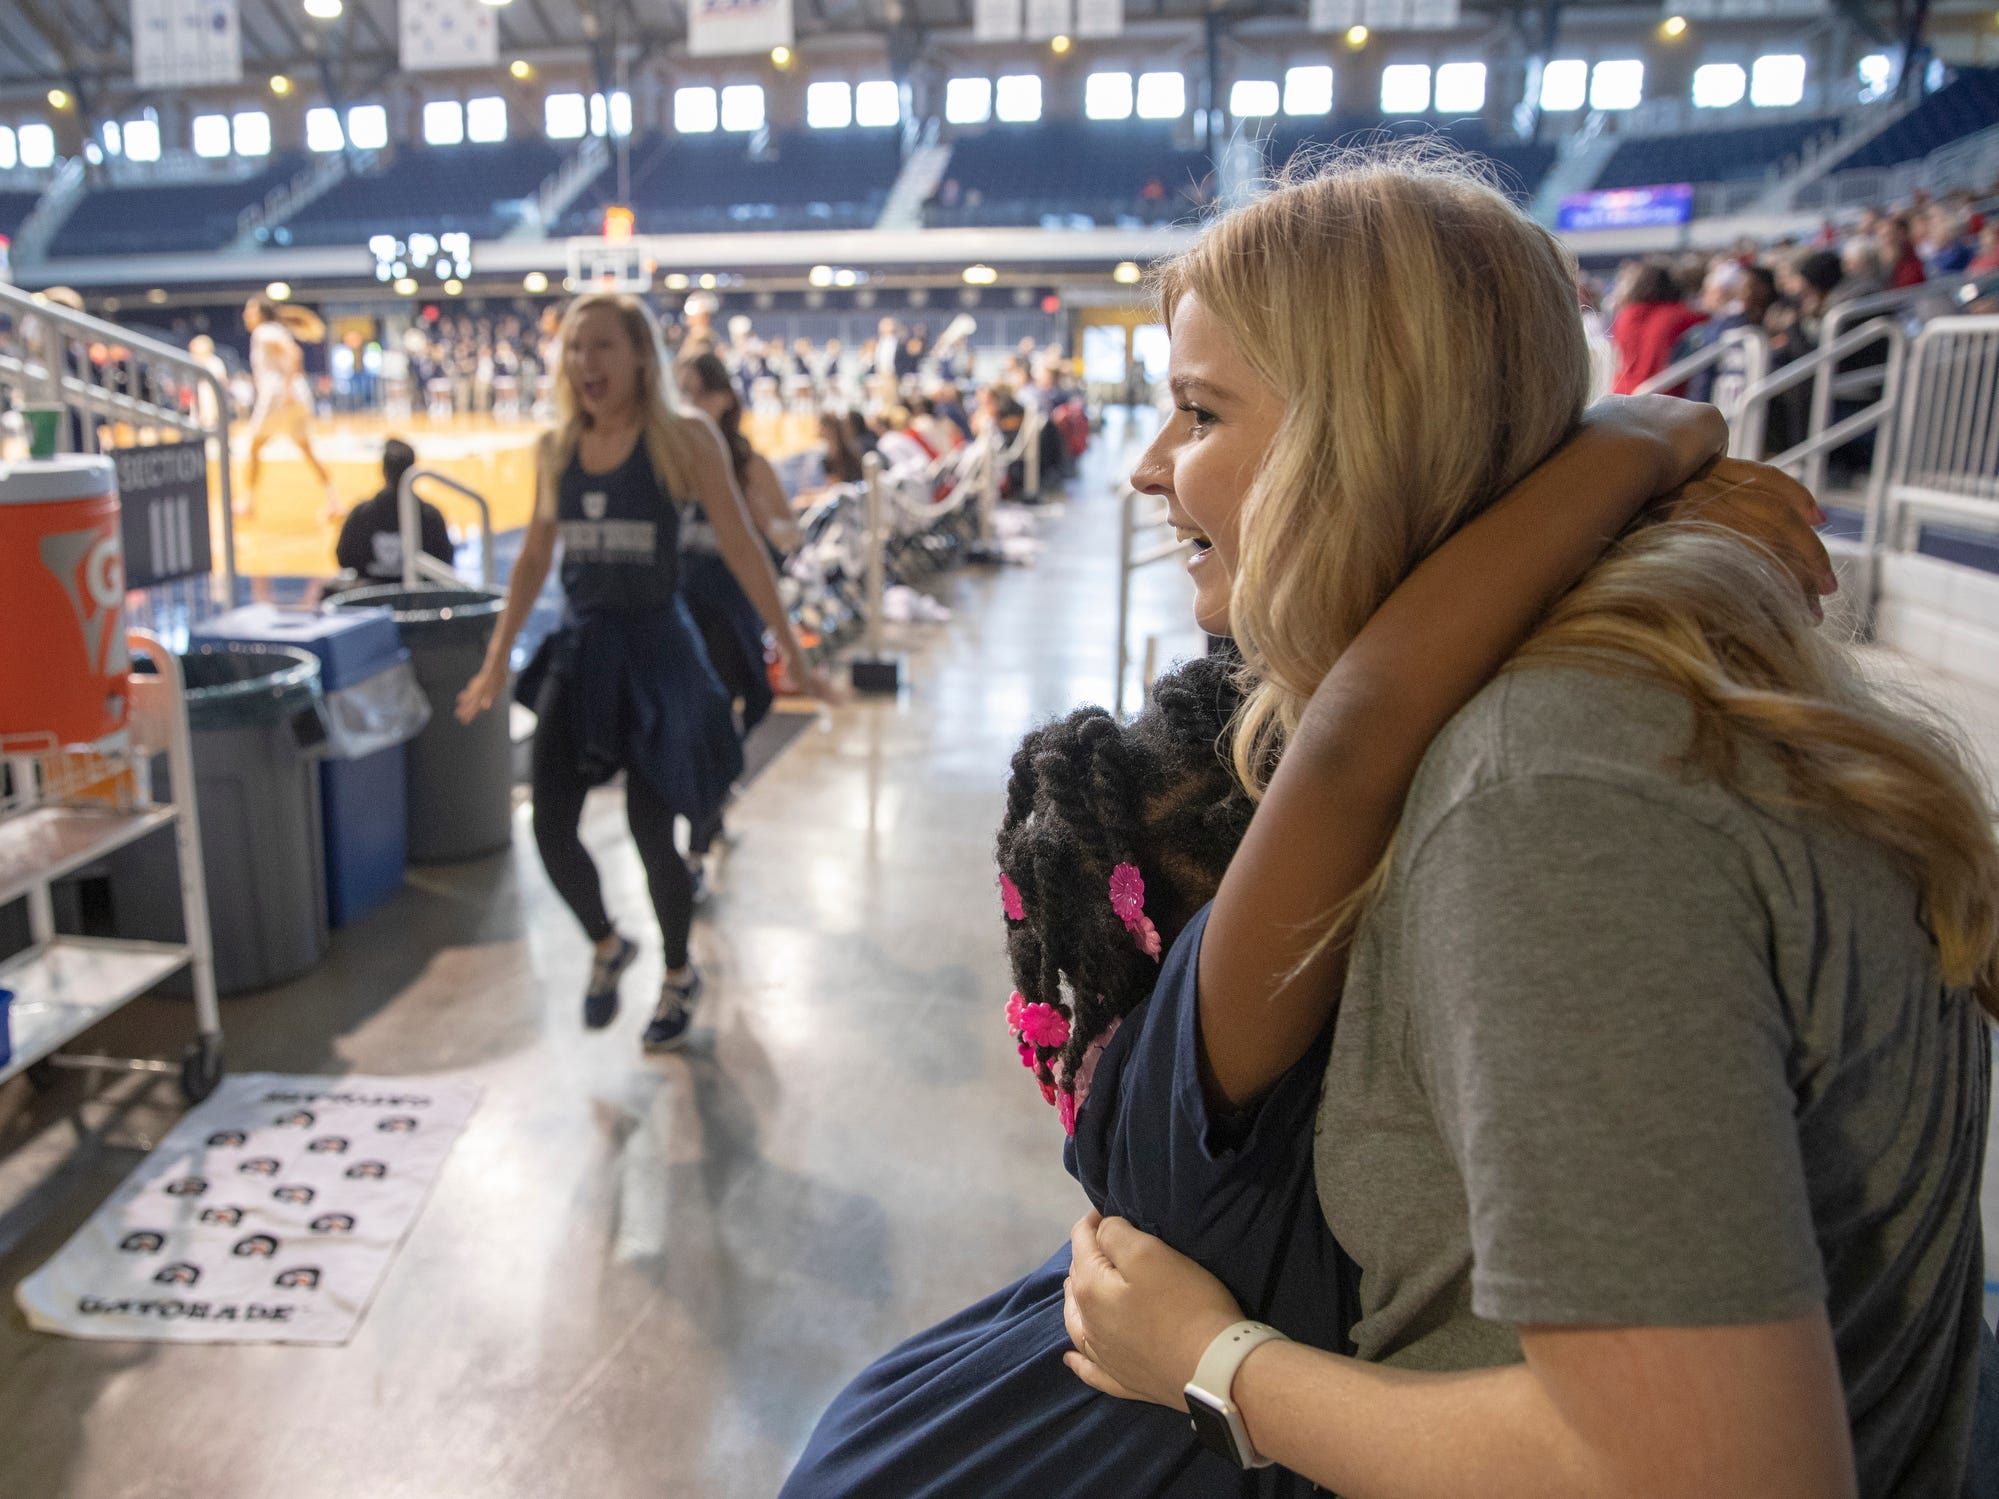 Angel Battles, 8, gives a hug to her teacher Abigail Christianson, her teacher at a special halftime performance during the Butler women's basketball game at Hinkle Fieldhouse, Indianapolis, Sunday, Dec. 2, 2018. Butler cheer and dance groups paired up with physical therapy students from Indiana University to teach young people with special needs a routine in preparation for a special performance during the afternoon's halftime show.